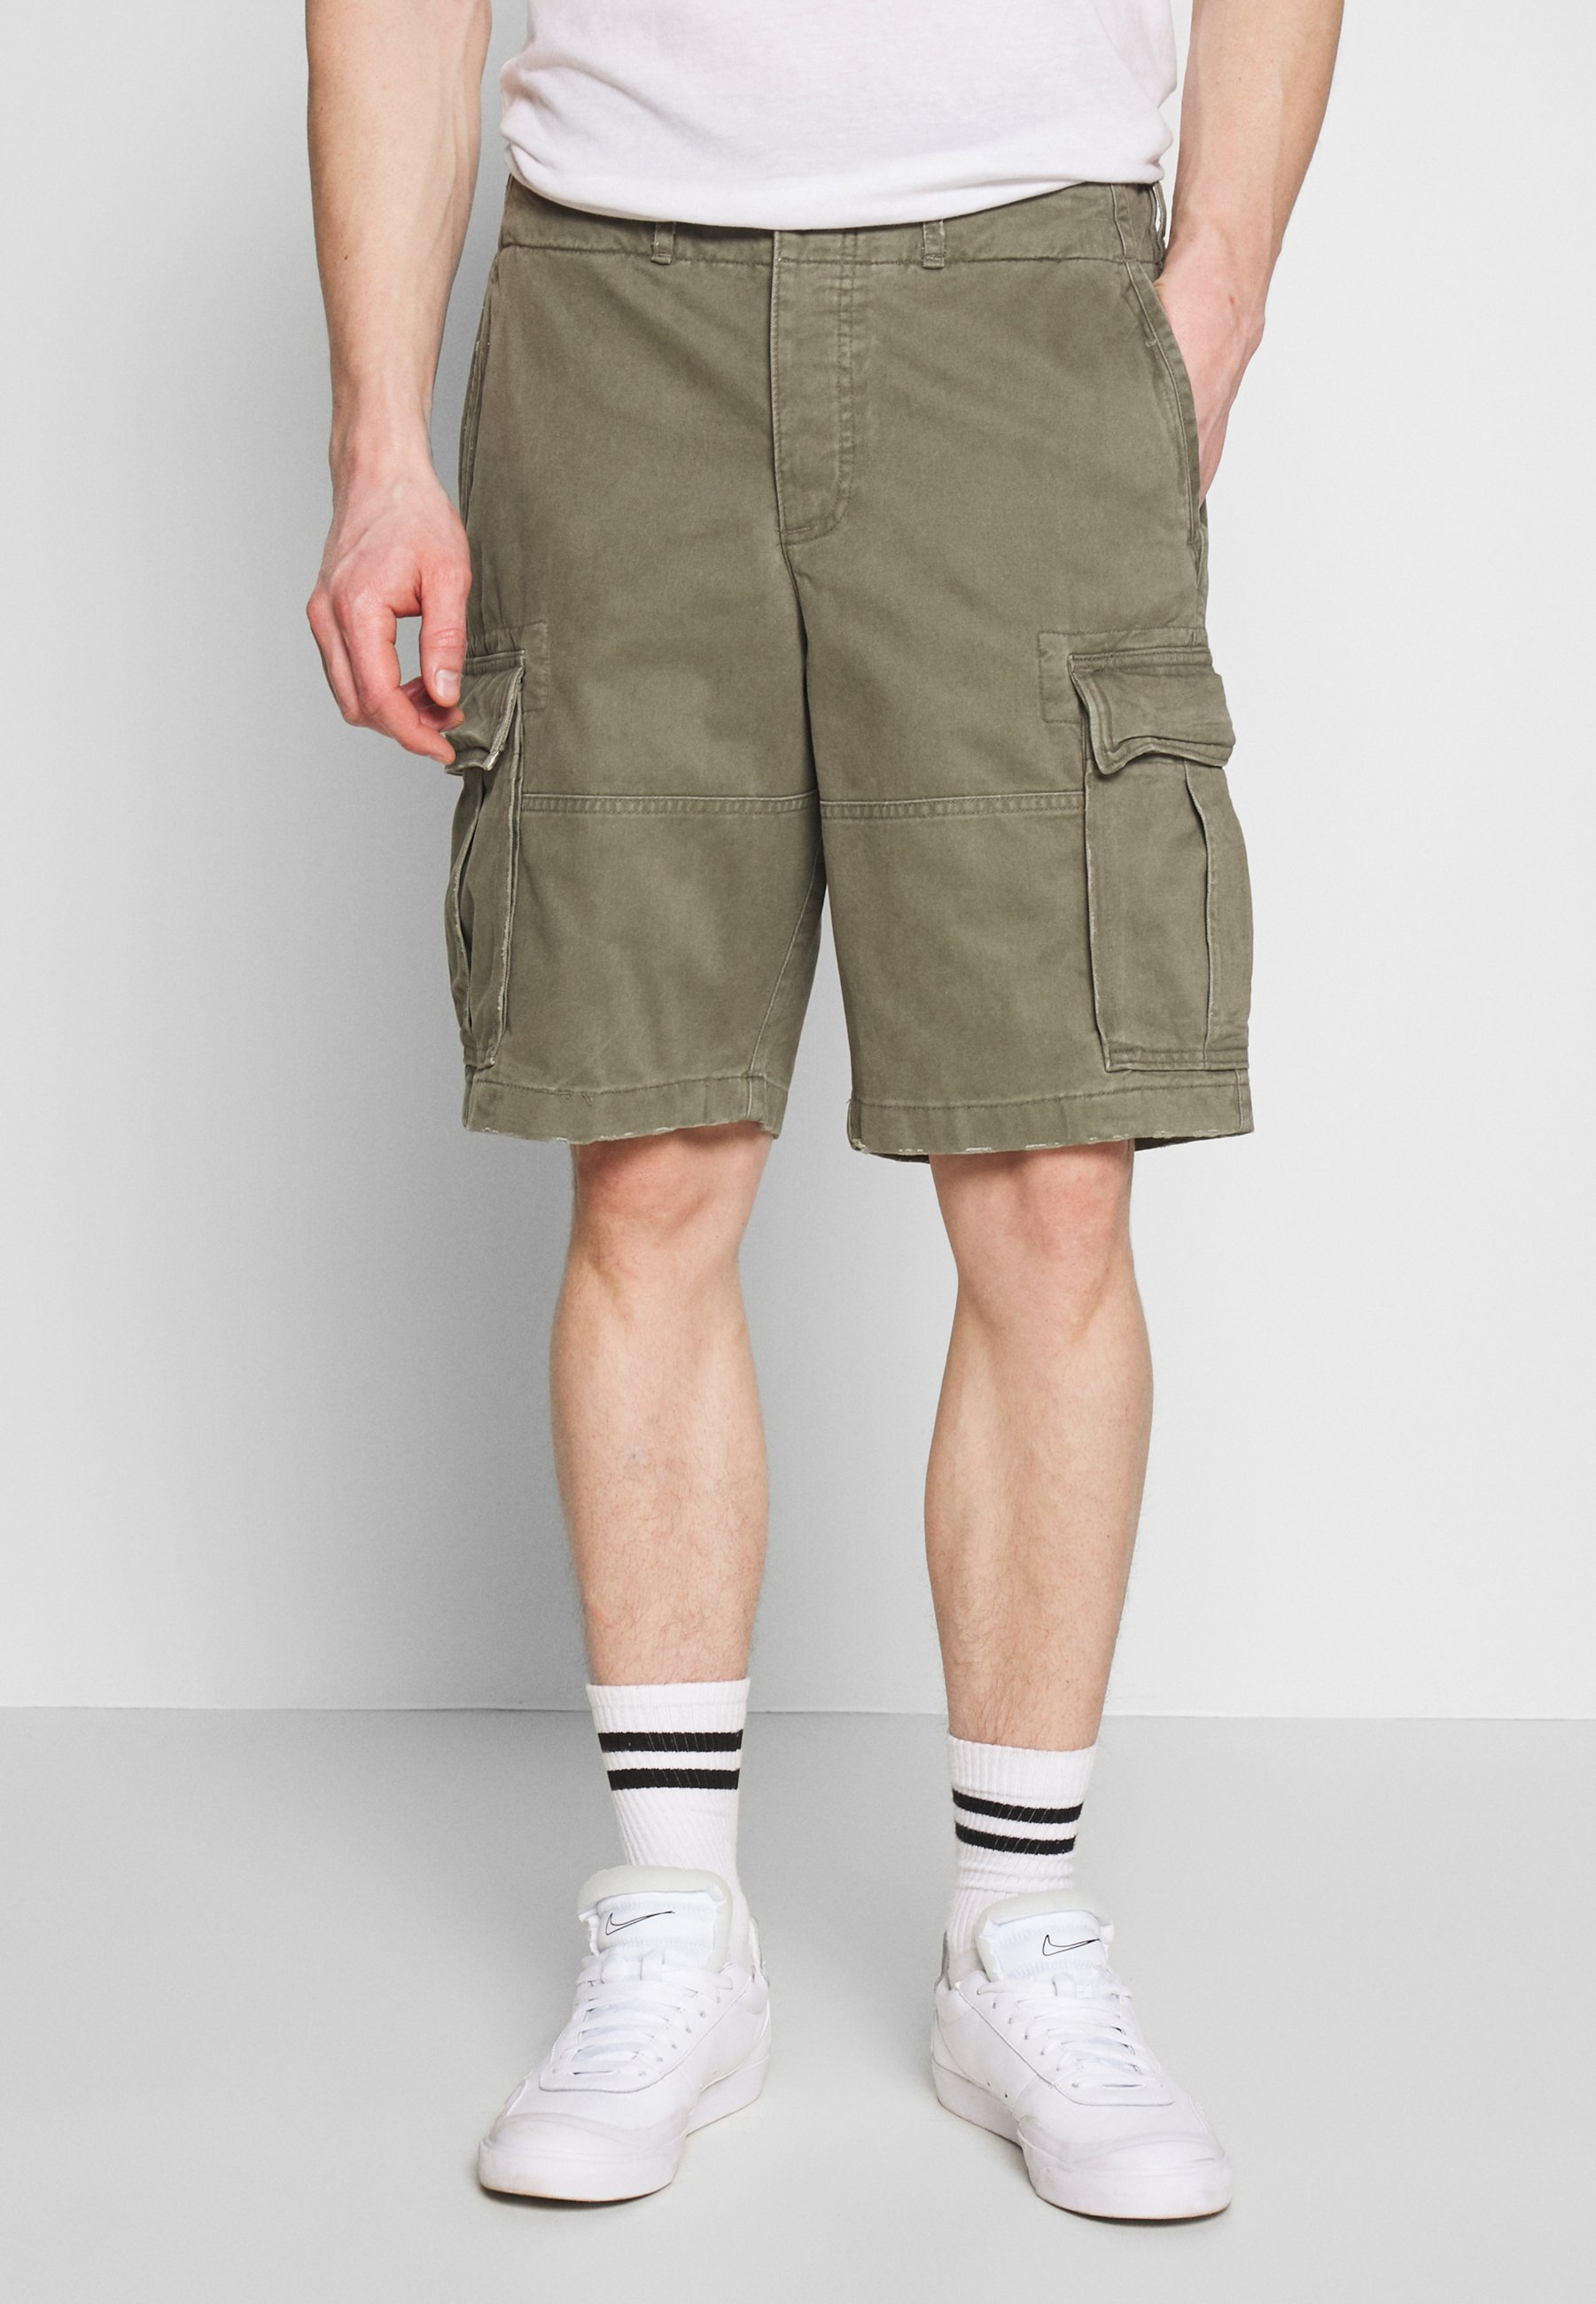 Abercrombie & Fitch Shorts - dusty olive